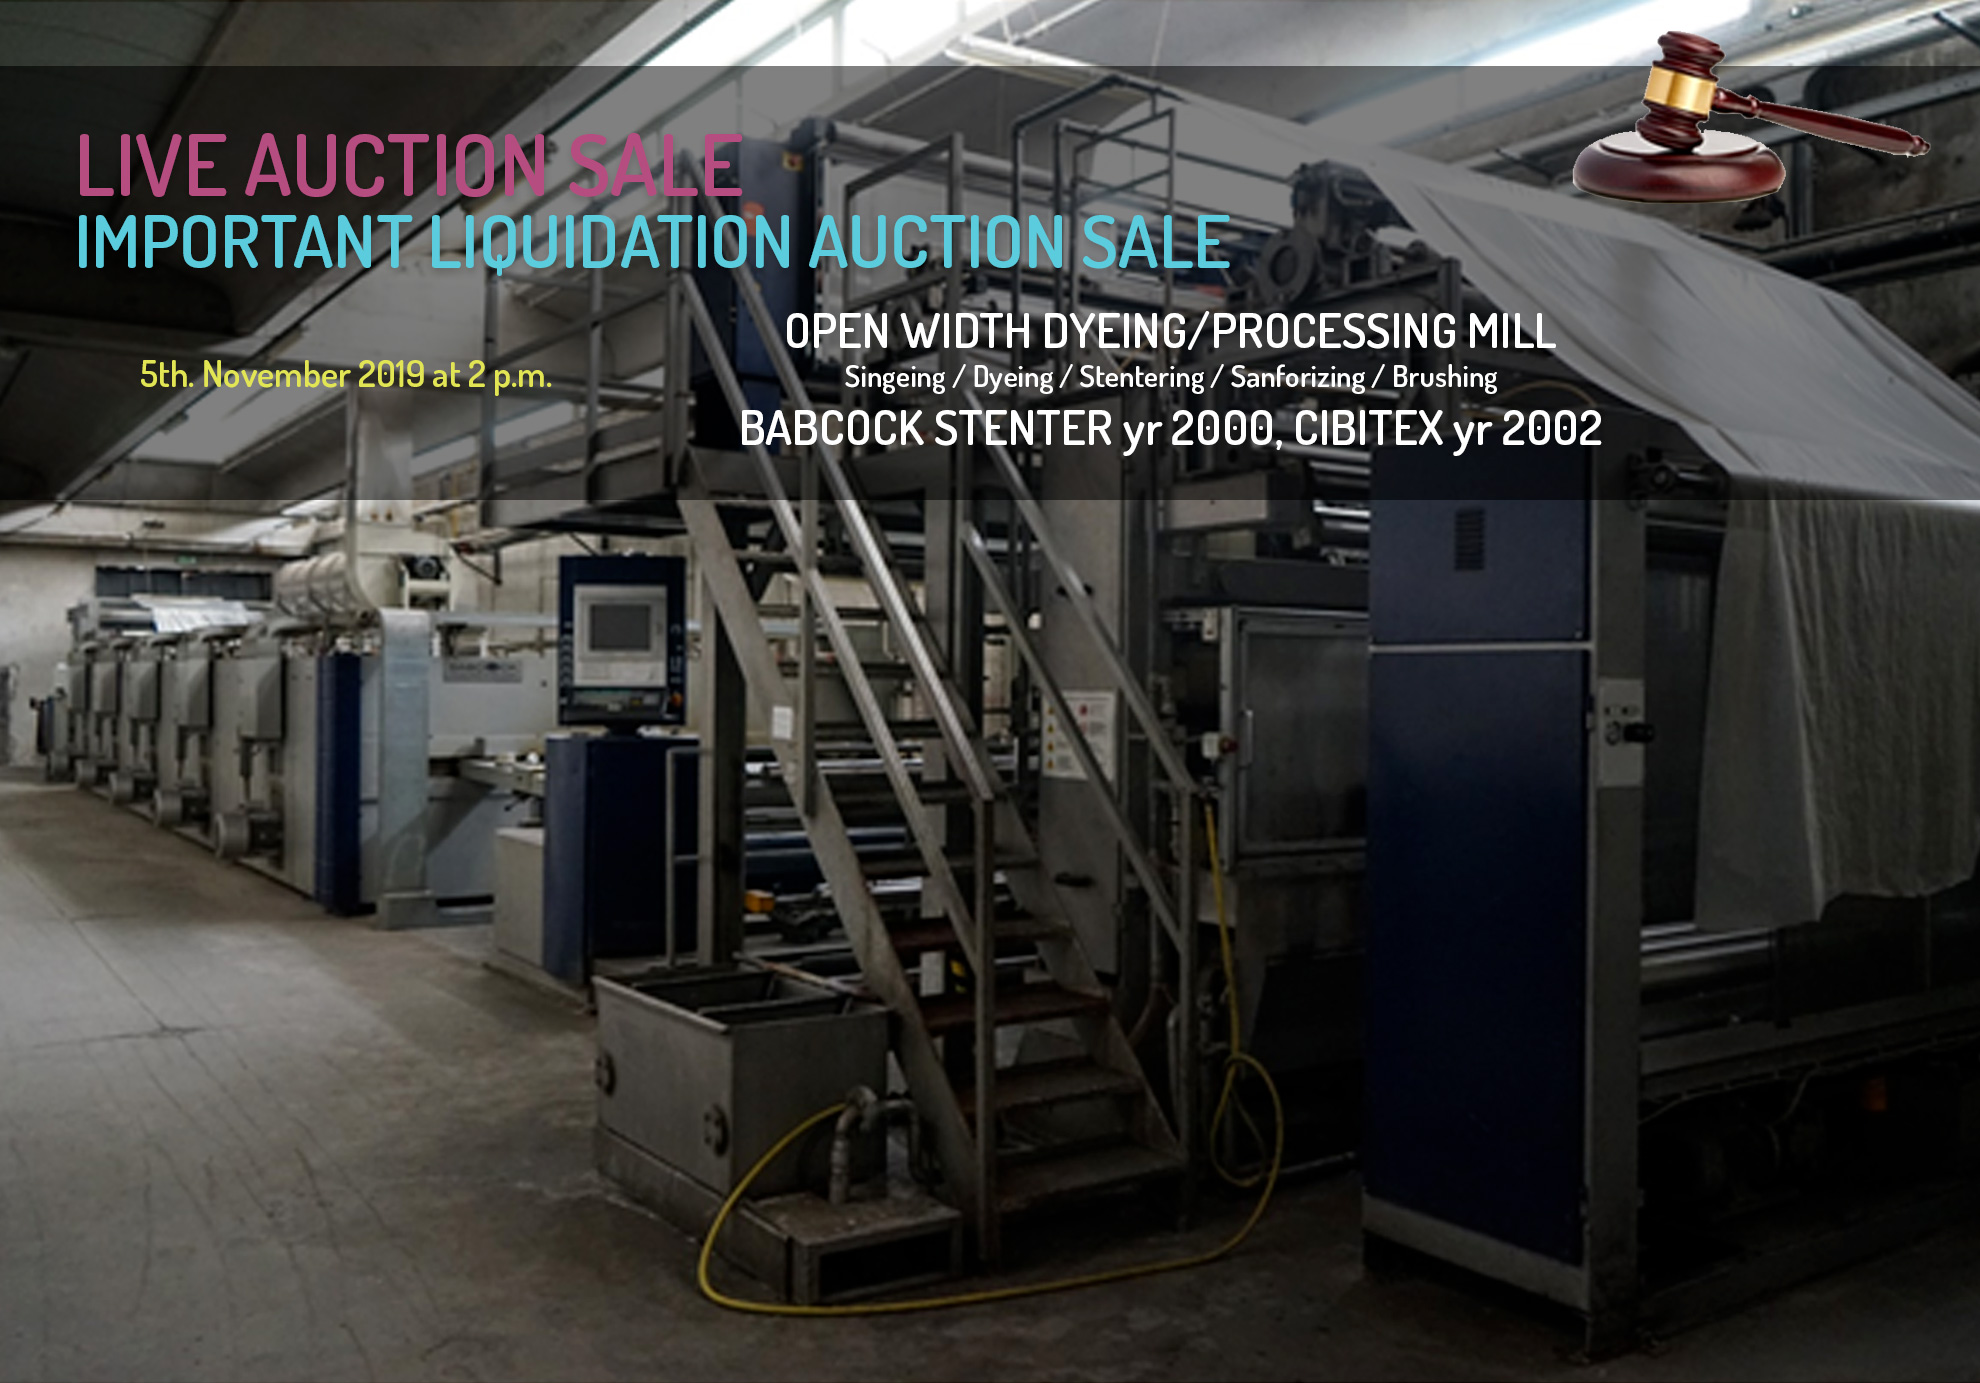 5th NOVEMBER TEXTILE PROCESSING MILL LIVE AUCTION SALE